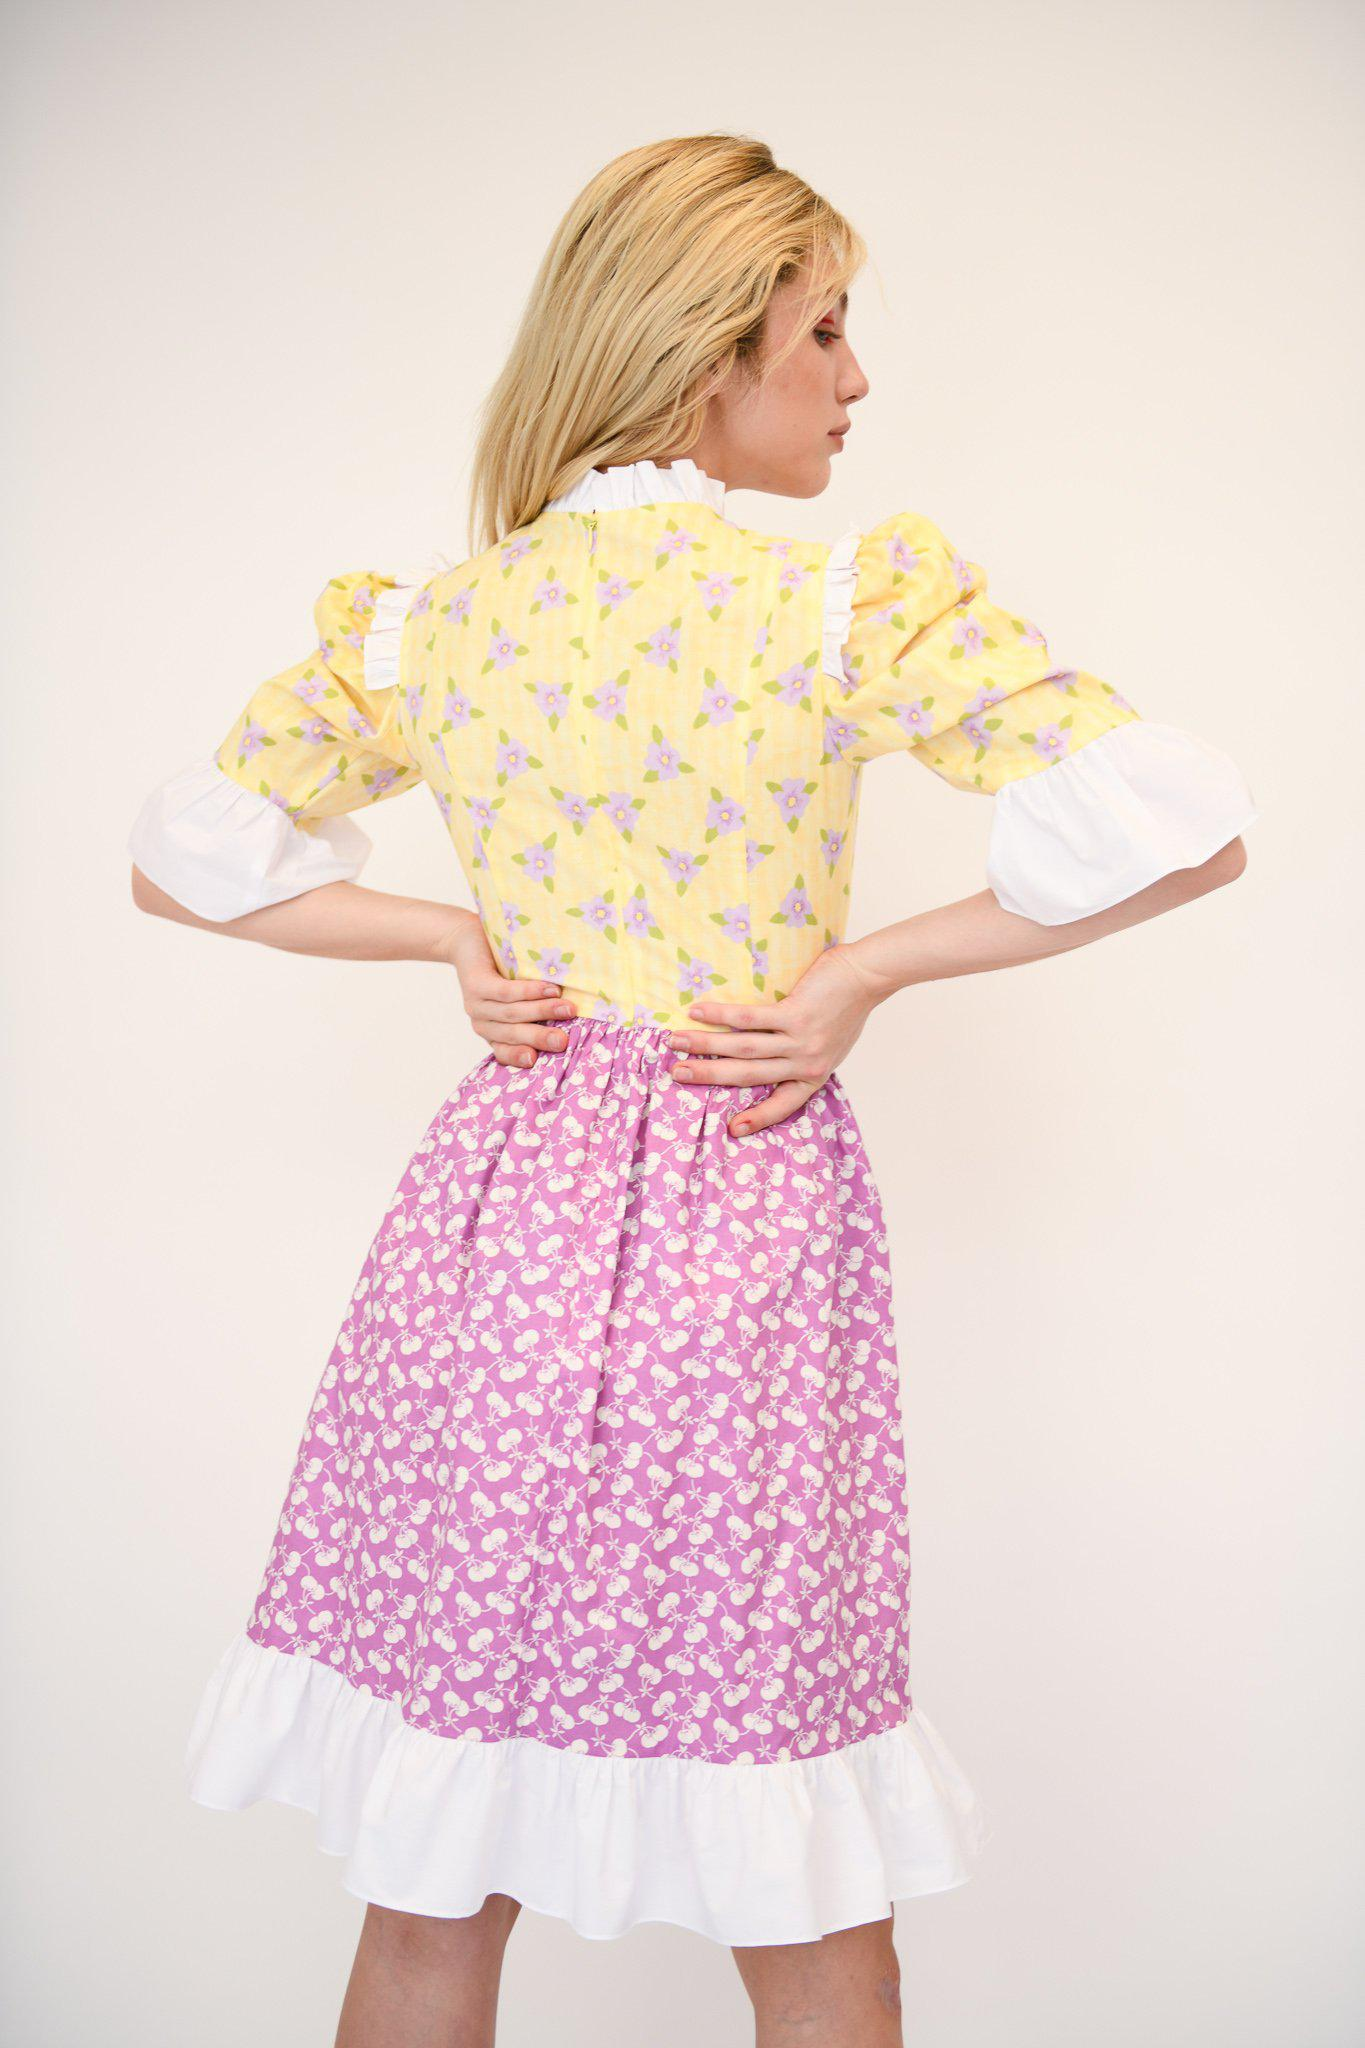 Spring Prairie Dress in Vintage Yellow and Purple Fabric 2